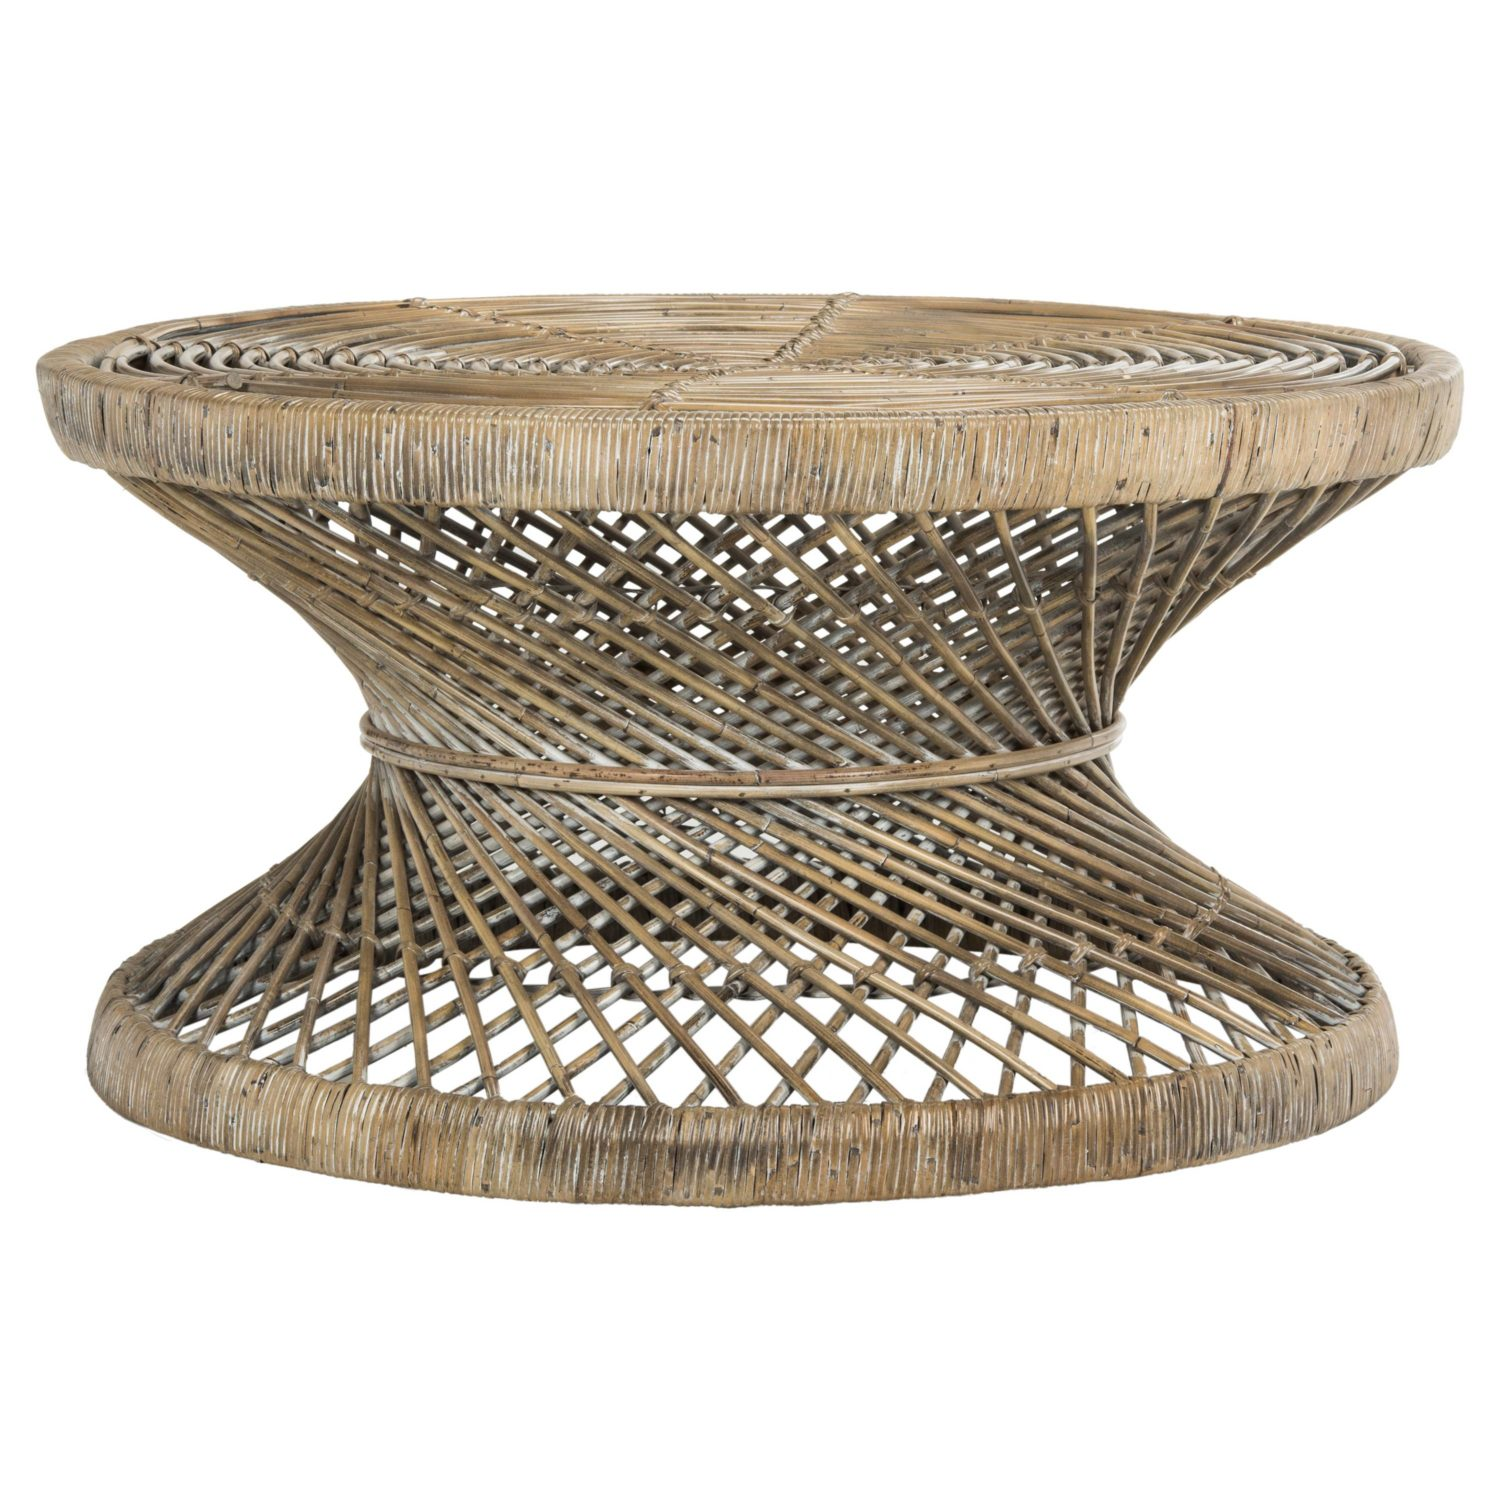 Rattan Round Coffee Table Eclectic Goods